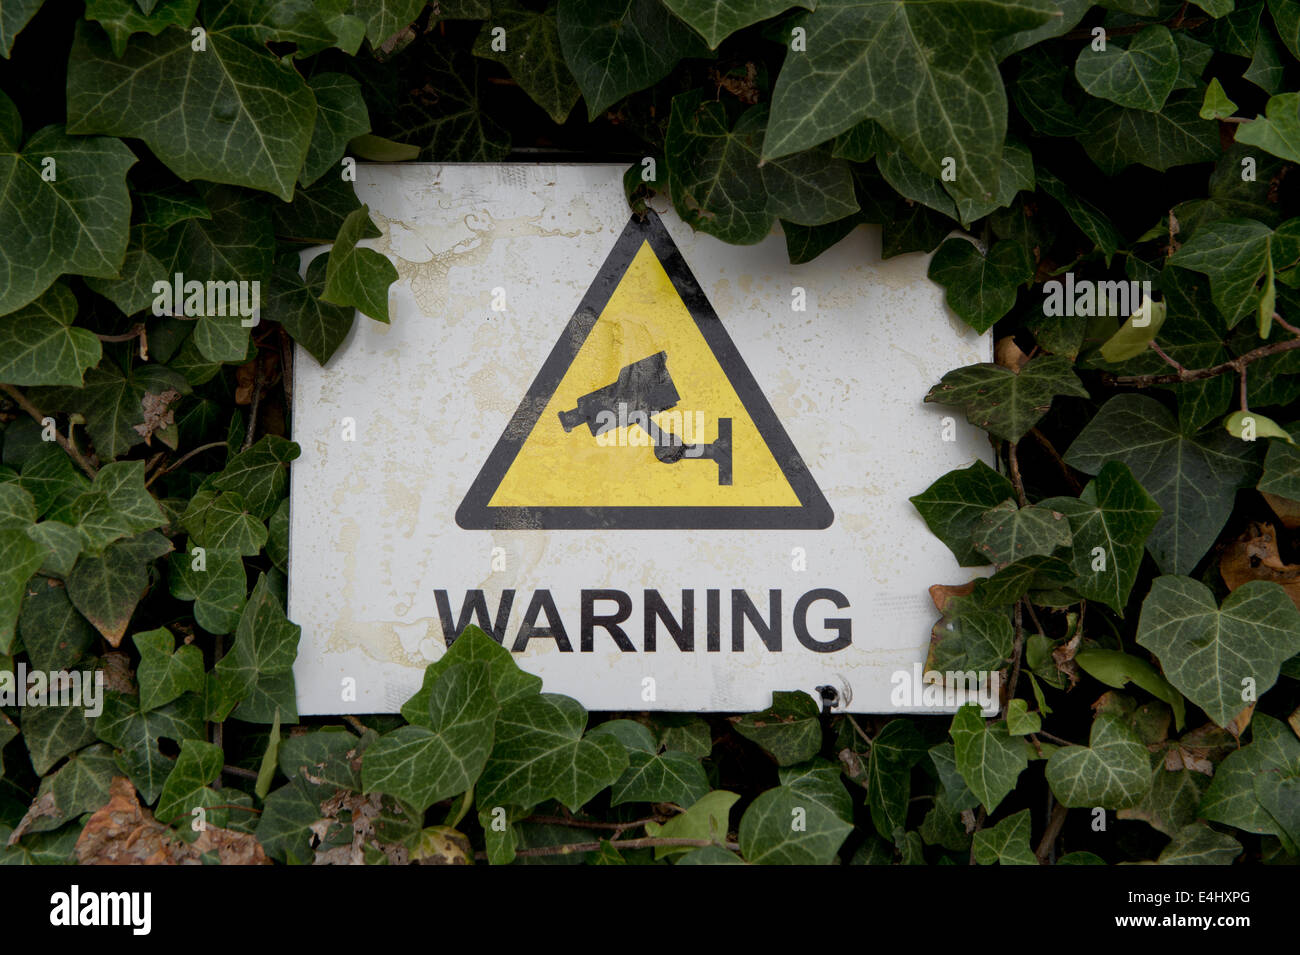 A warning sign indicating that CCTV is in operation in partially hidden behind some leaves in Manchester, UK. - Stock Image